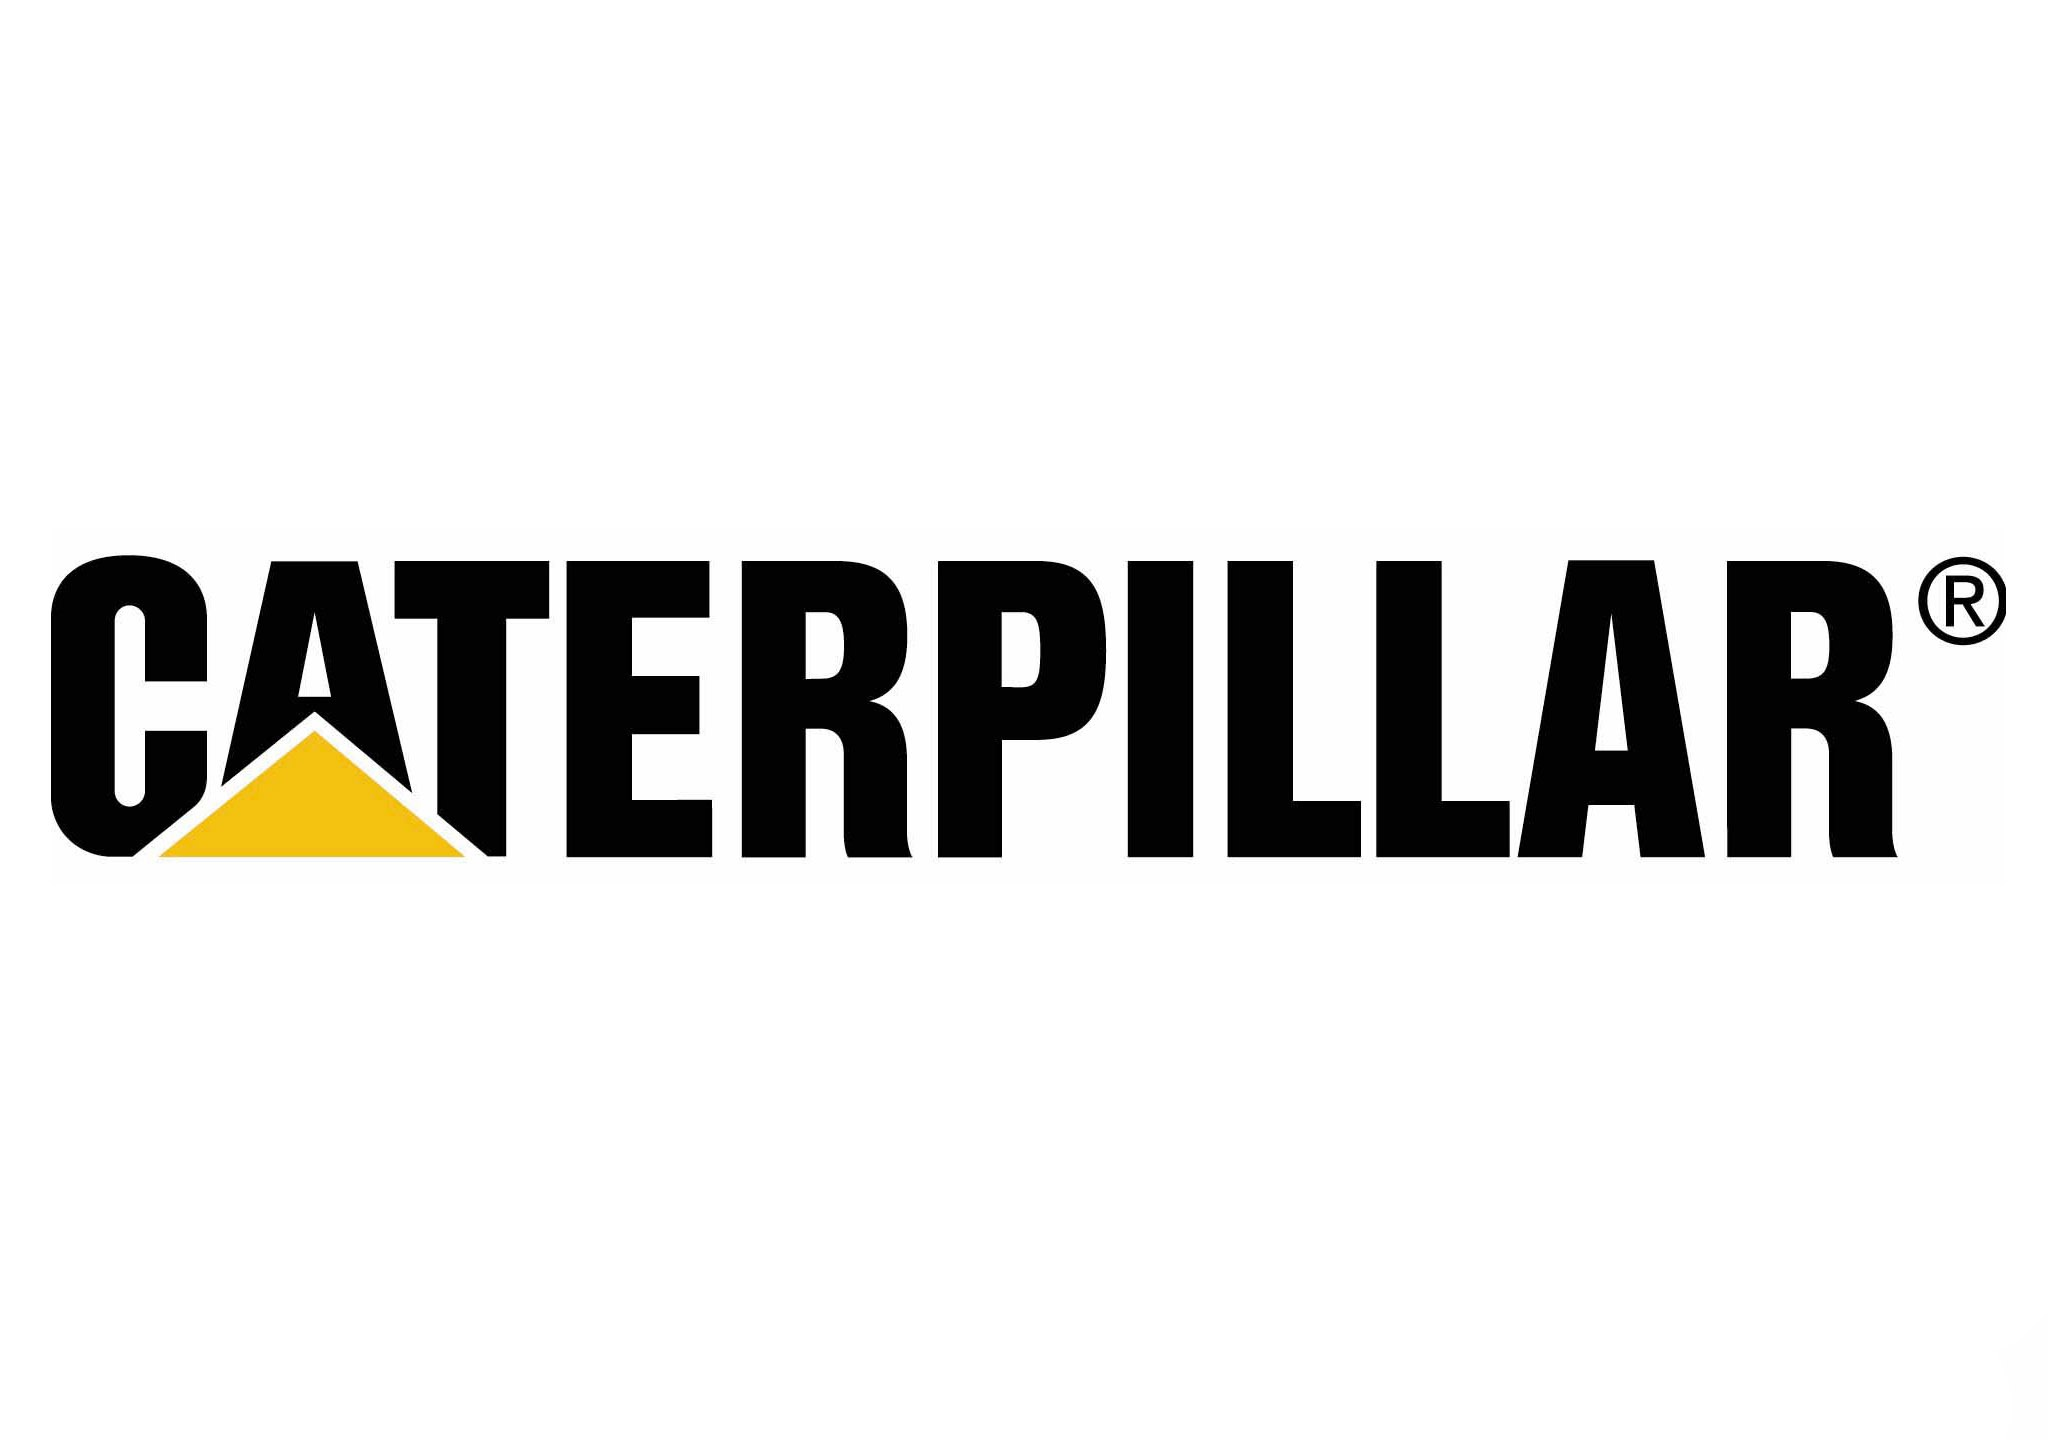 Caterpillar logo_1444171946570.jpg